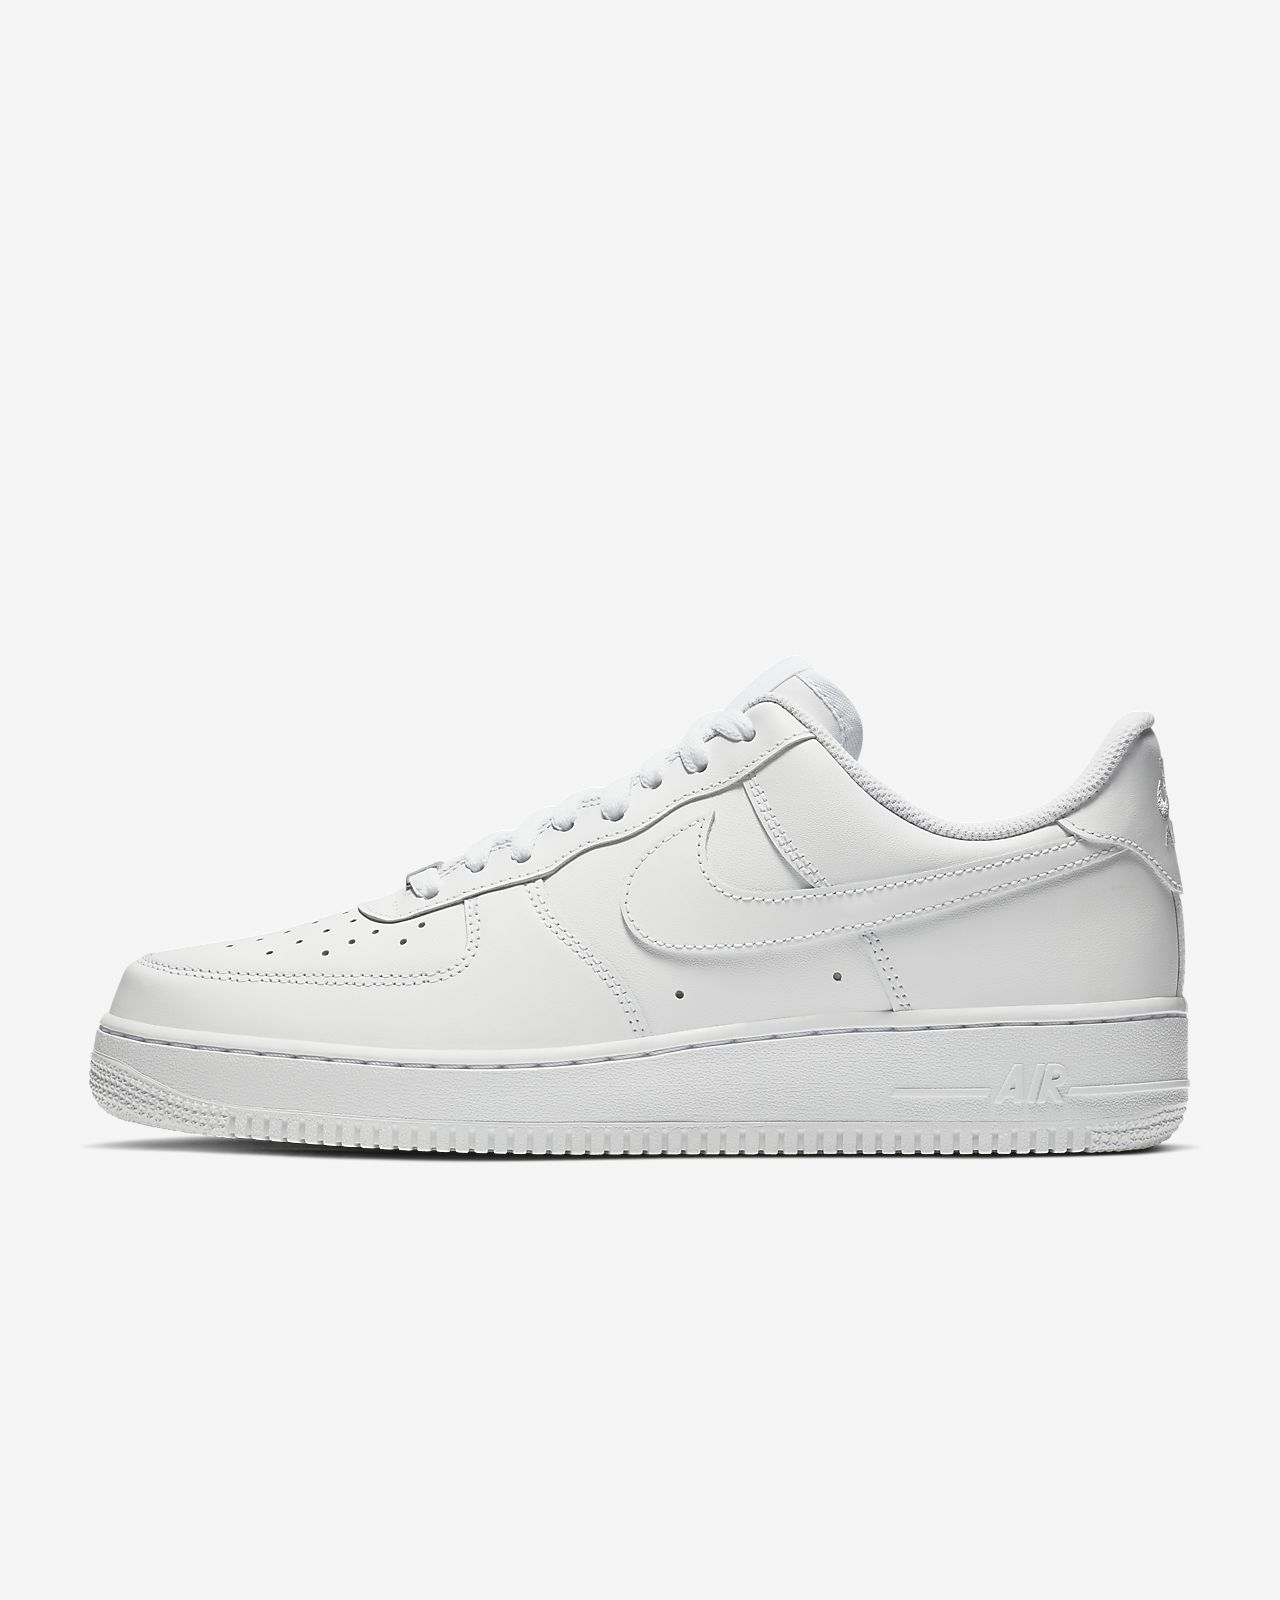 09bfbb13da6 Nike Air Force 1  07 Shoe. Nike.com